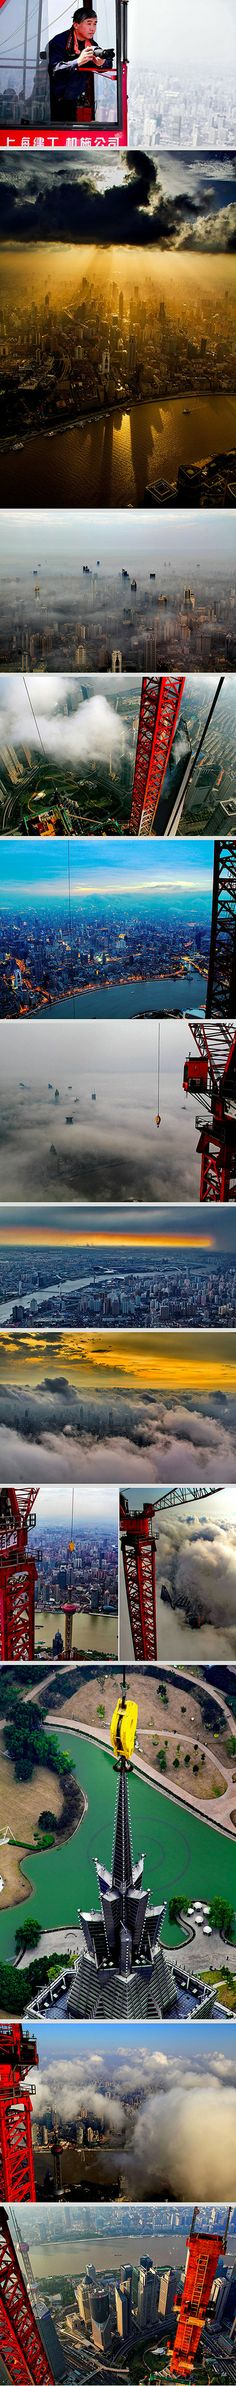 While working on the second tallest building in the world, professional crane operator Wei Gensheng decided to take some pictures from above. Little did he know these photos from Shanghai Tower would make him the most famous crane operator in the world. He has even won the second prize in Shanghai City Photography Competition.